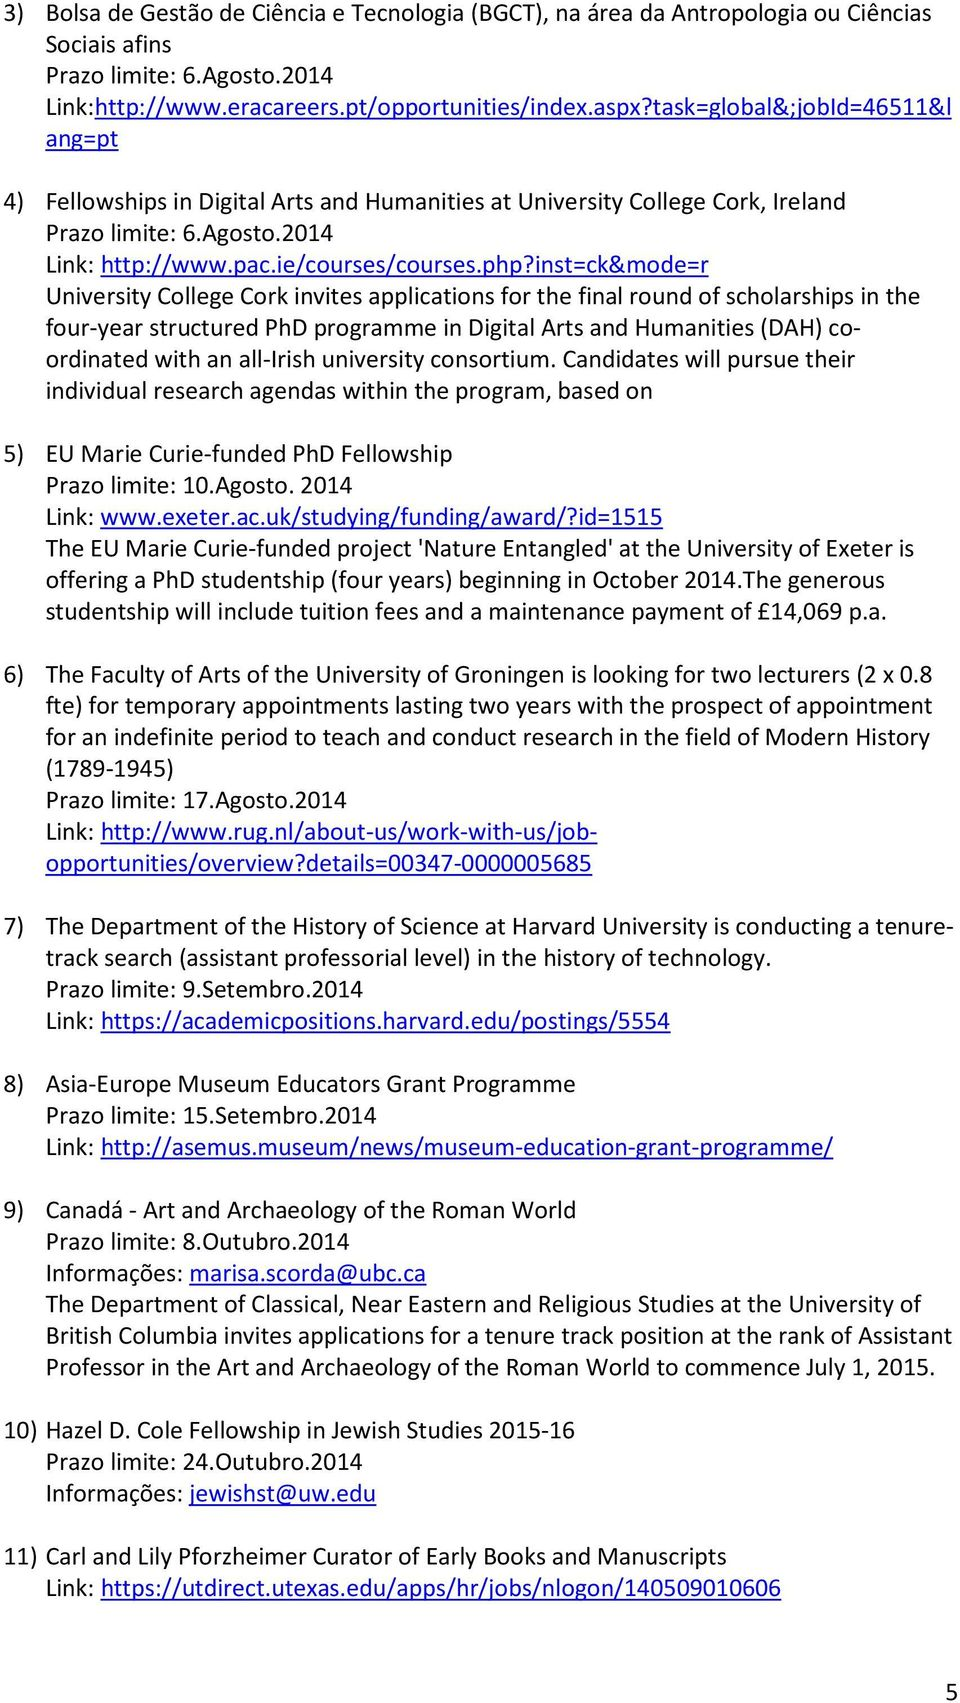 inst=ck&mode=r University College Cork invites applications for the final round of scholarships in the four-year structured PhD programme in Digital Arts and Humanities (DAH) coordinated with an